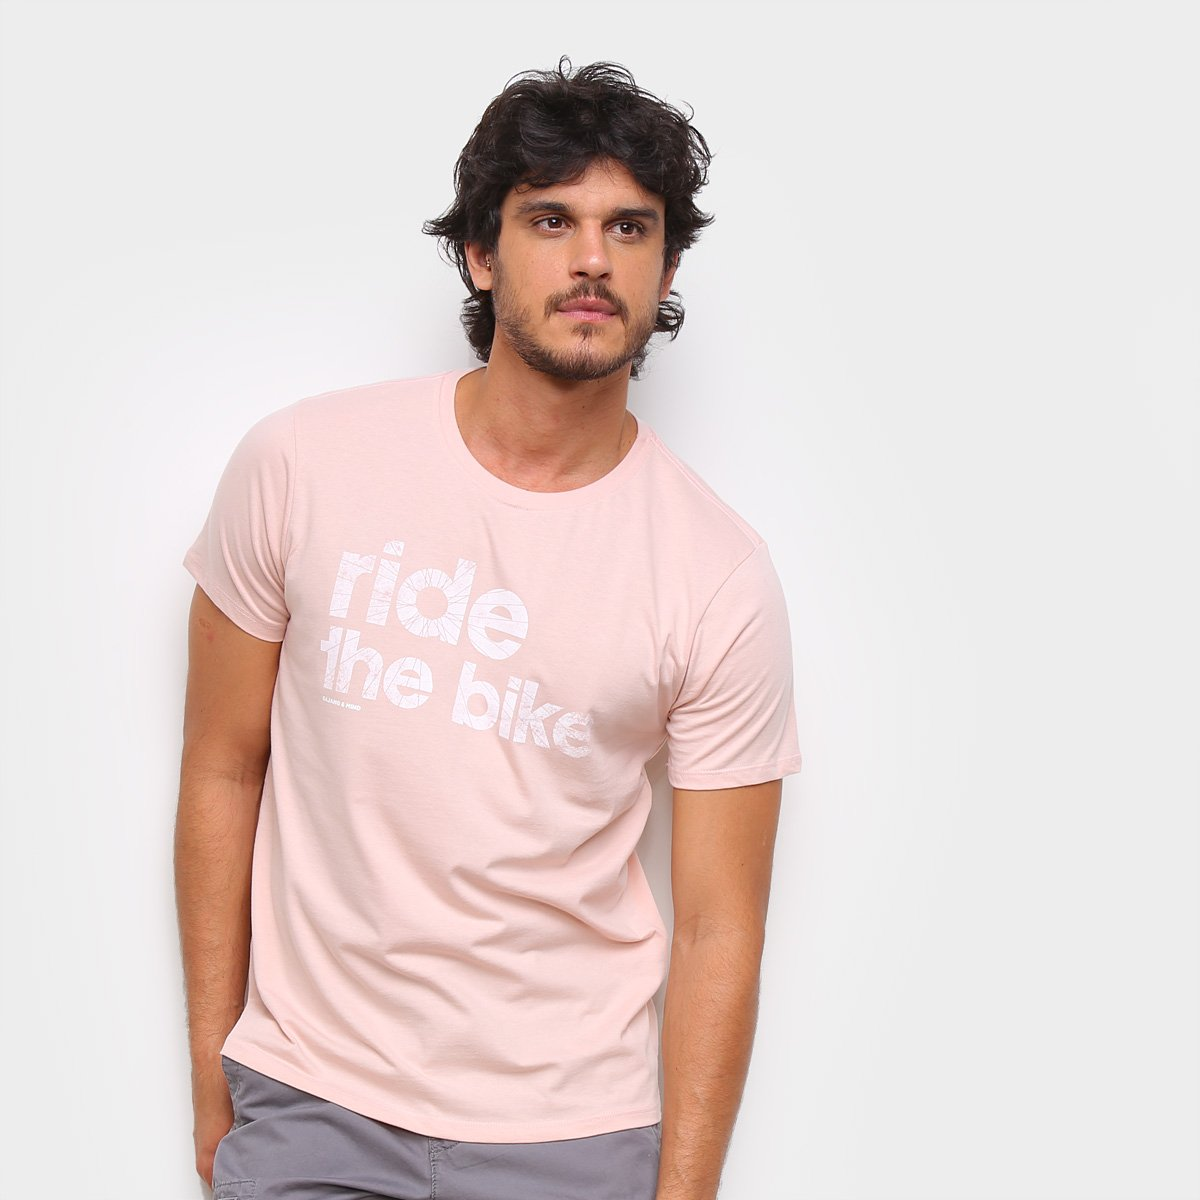 Camiseta Gajang Ride The Bike Masculina